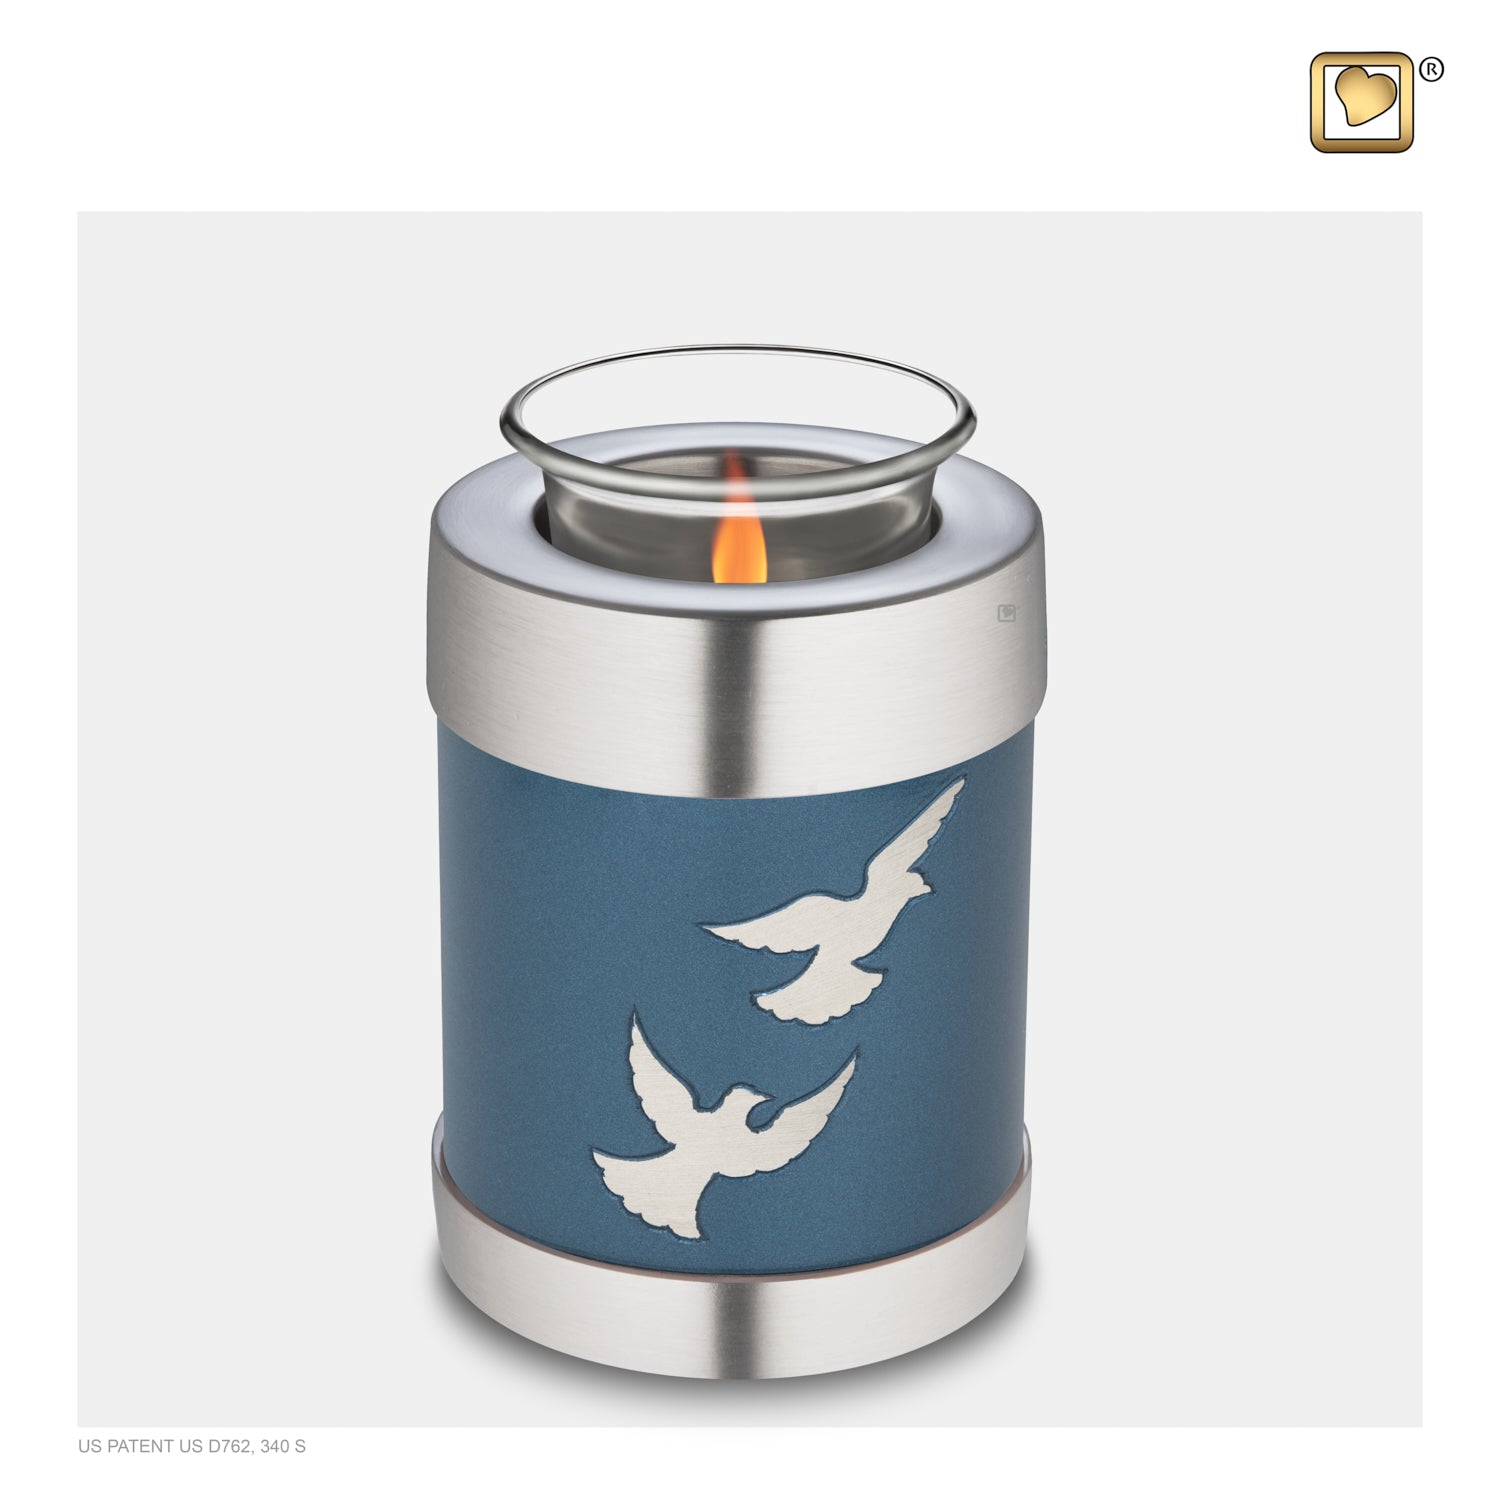 Tealight Flying Doves Cremation Urn